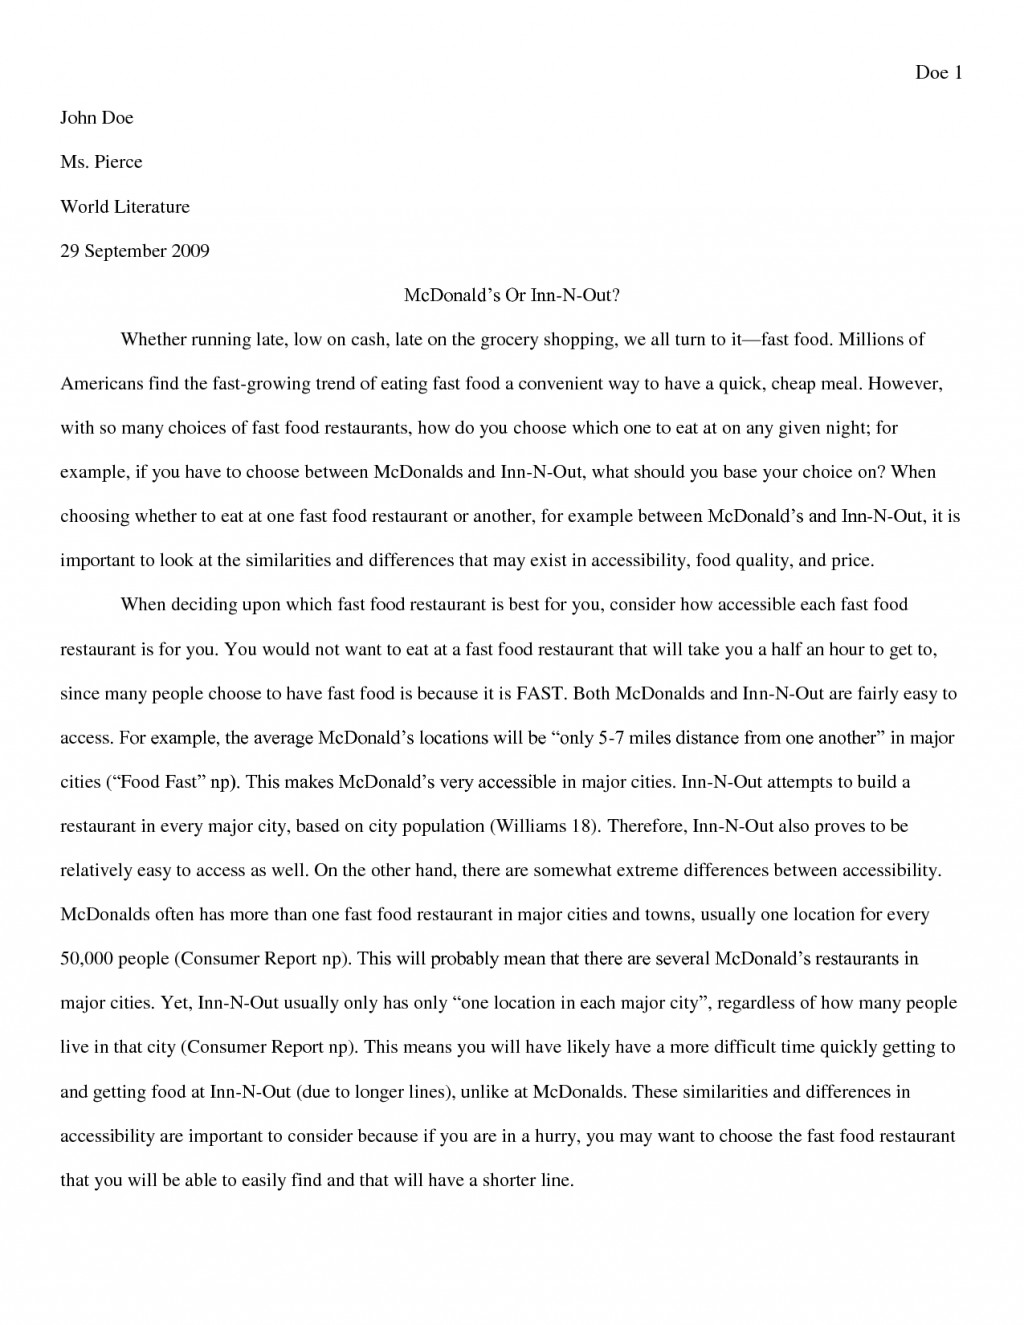 009 Essay Example High School Sample Papers 526023 Examples Unique For Personal Statement Essays 5 Paragraph Argumentative Tagalog Large